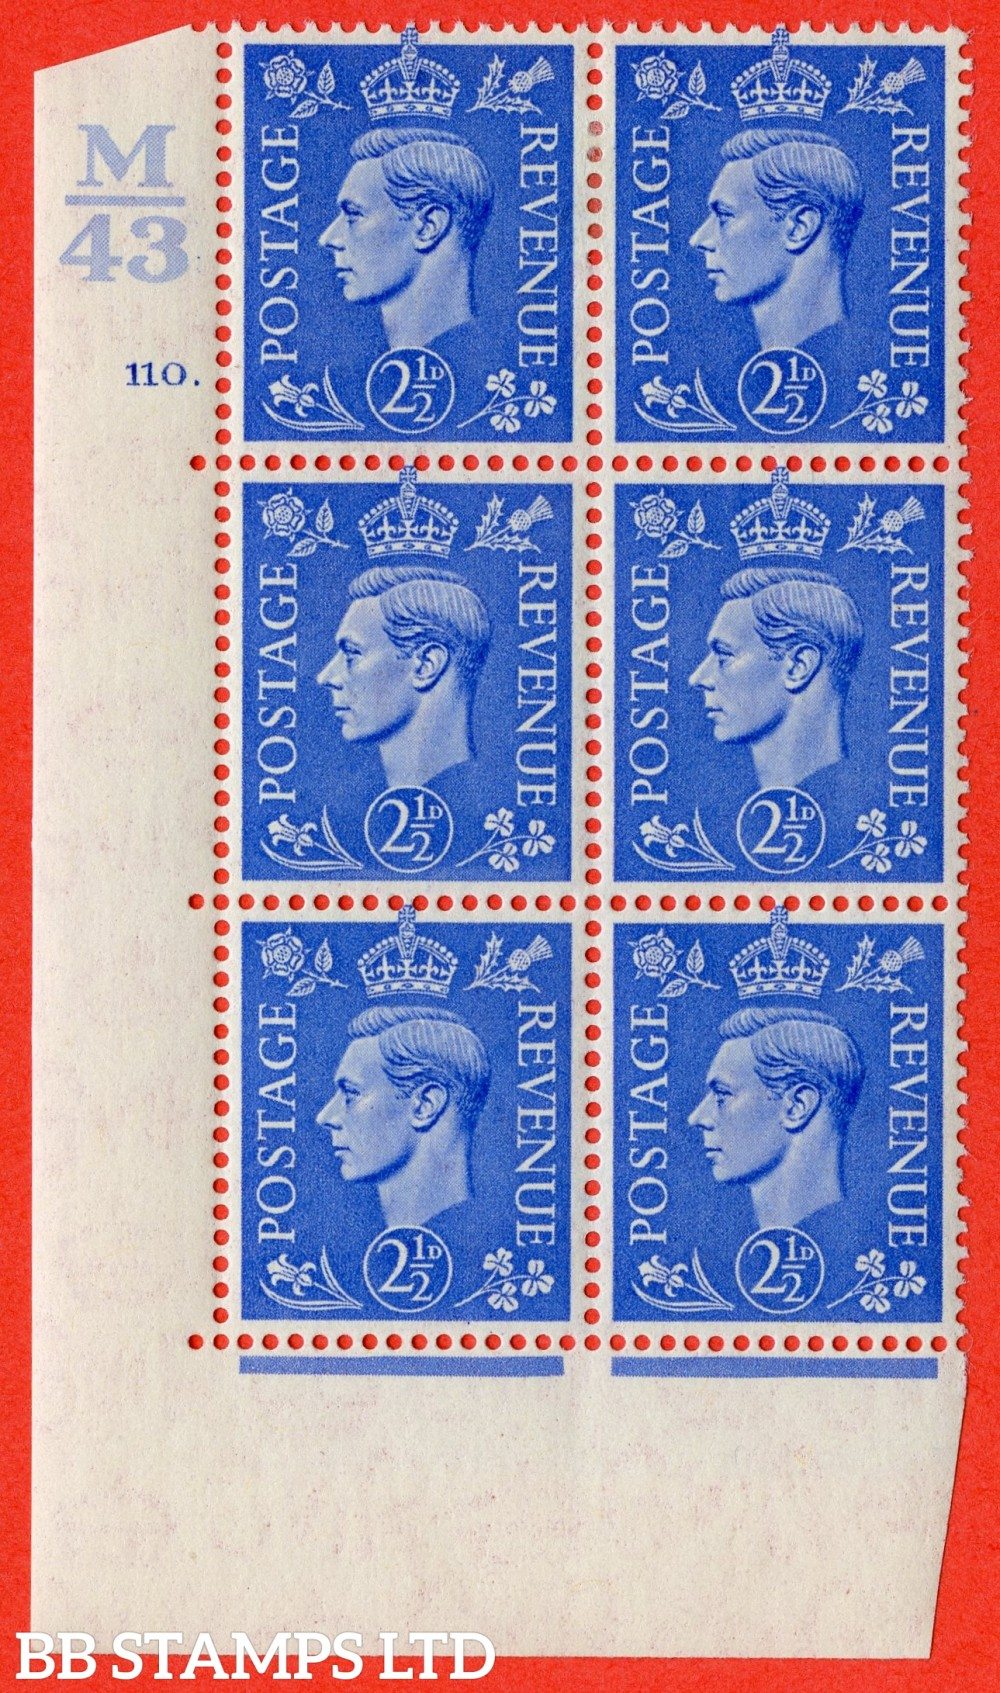 "SG. 489. Q14. 2½d Light ultramarine. A fine lightly mounted mint "" Control M43 cylinder 110 no dot "" control block of 6 with perf type 5 E/I."